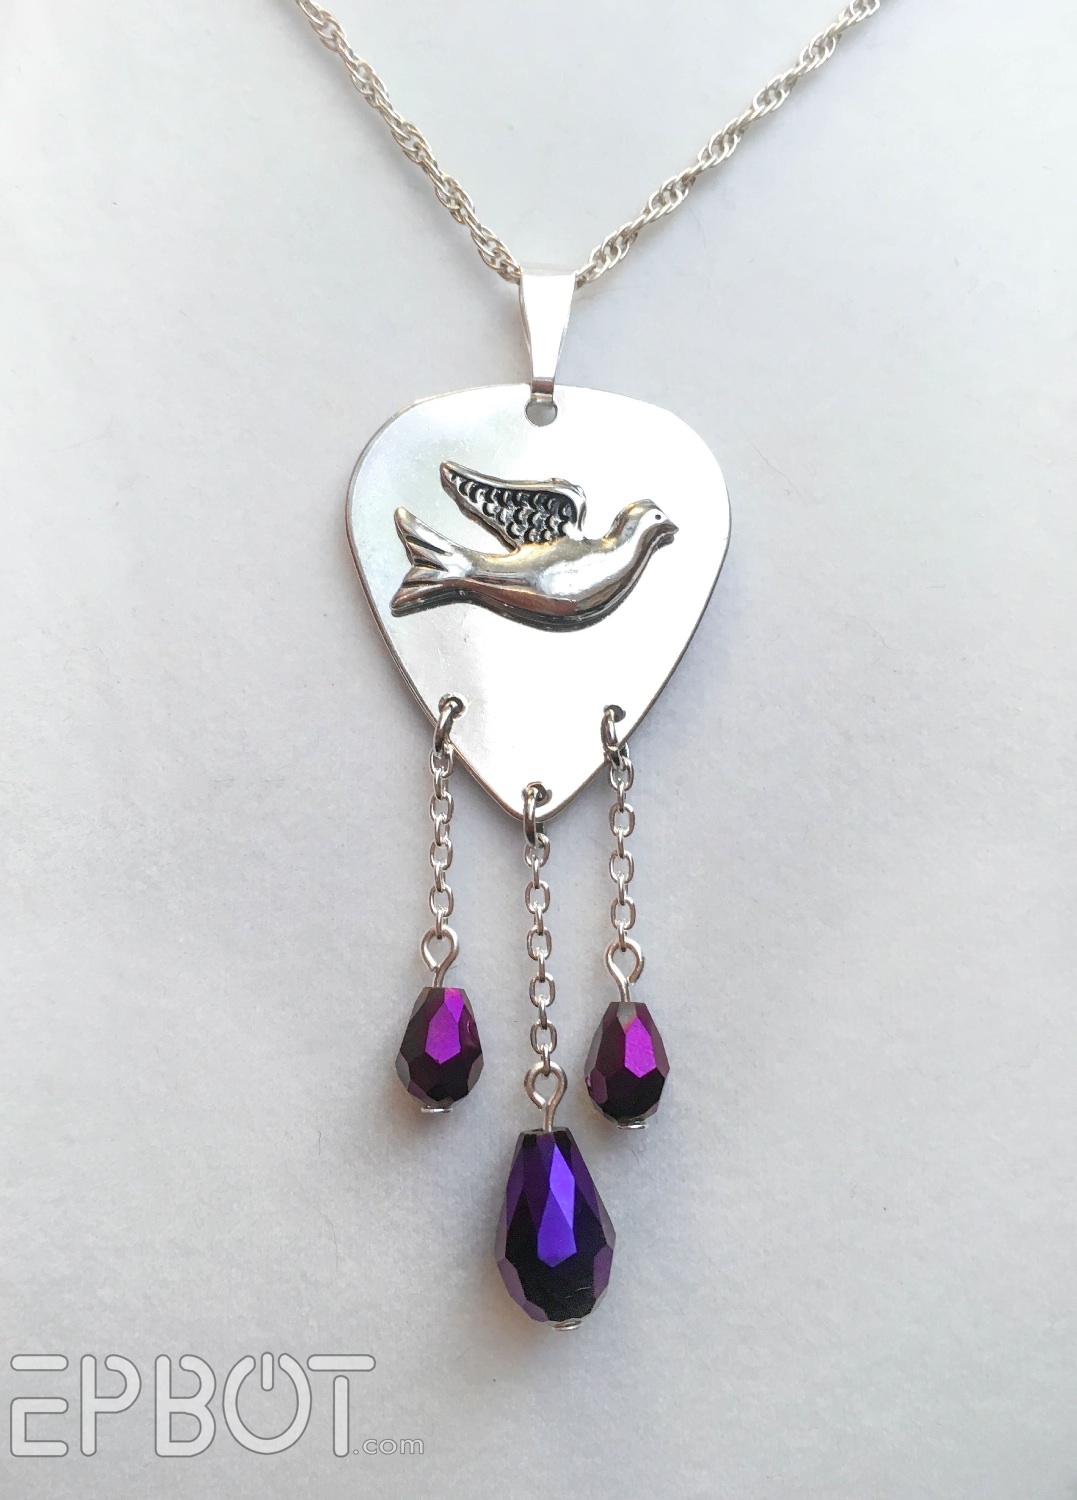 epbot diy prince tribute necklace when doves cry purple